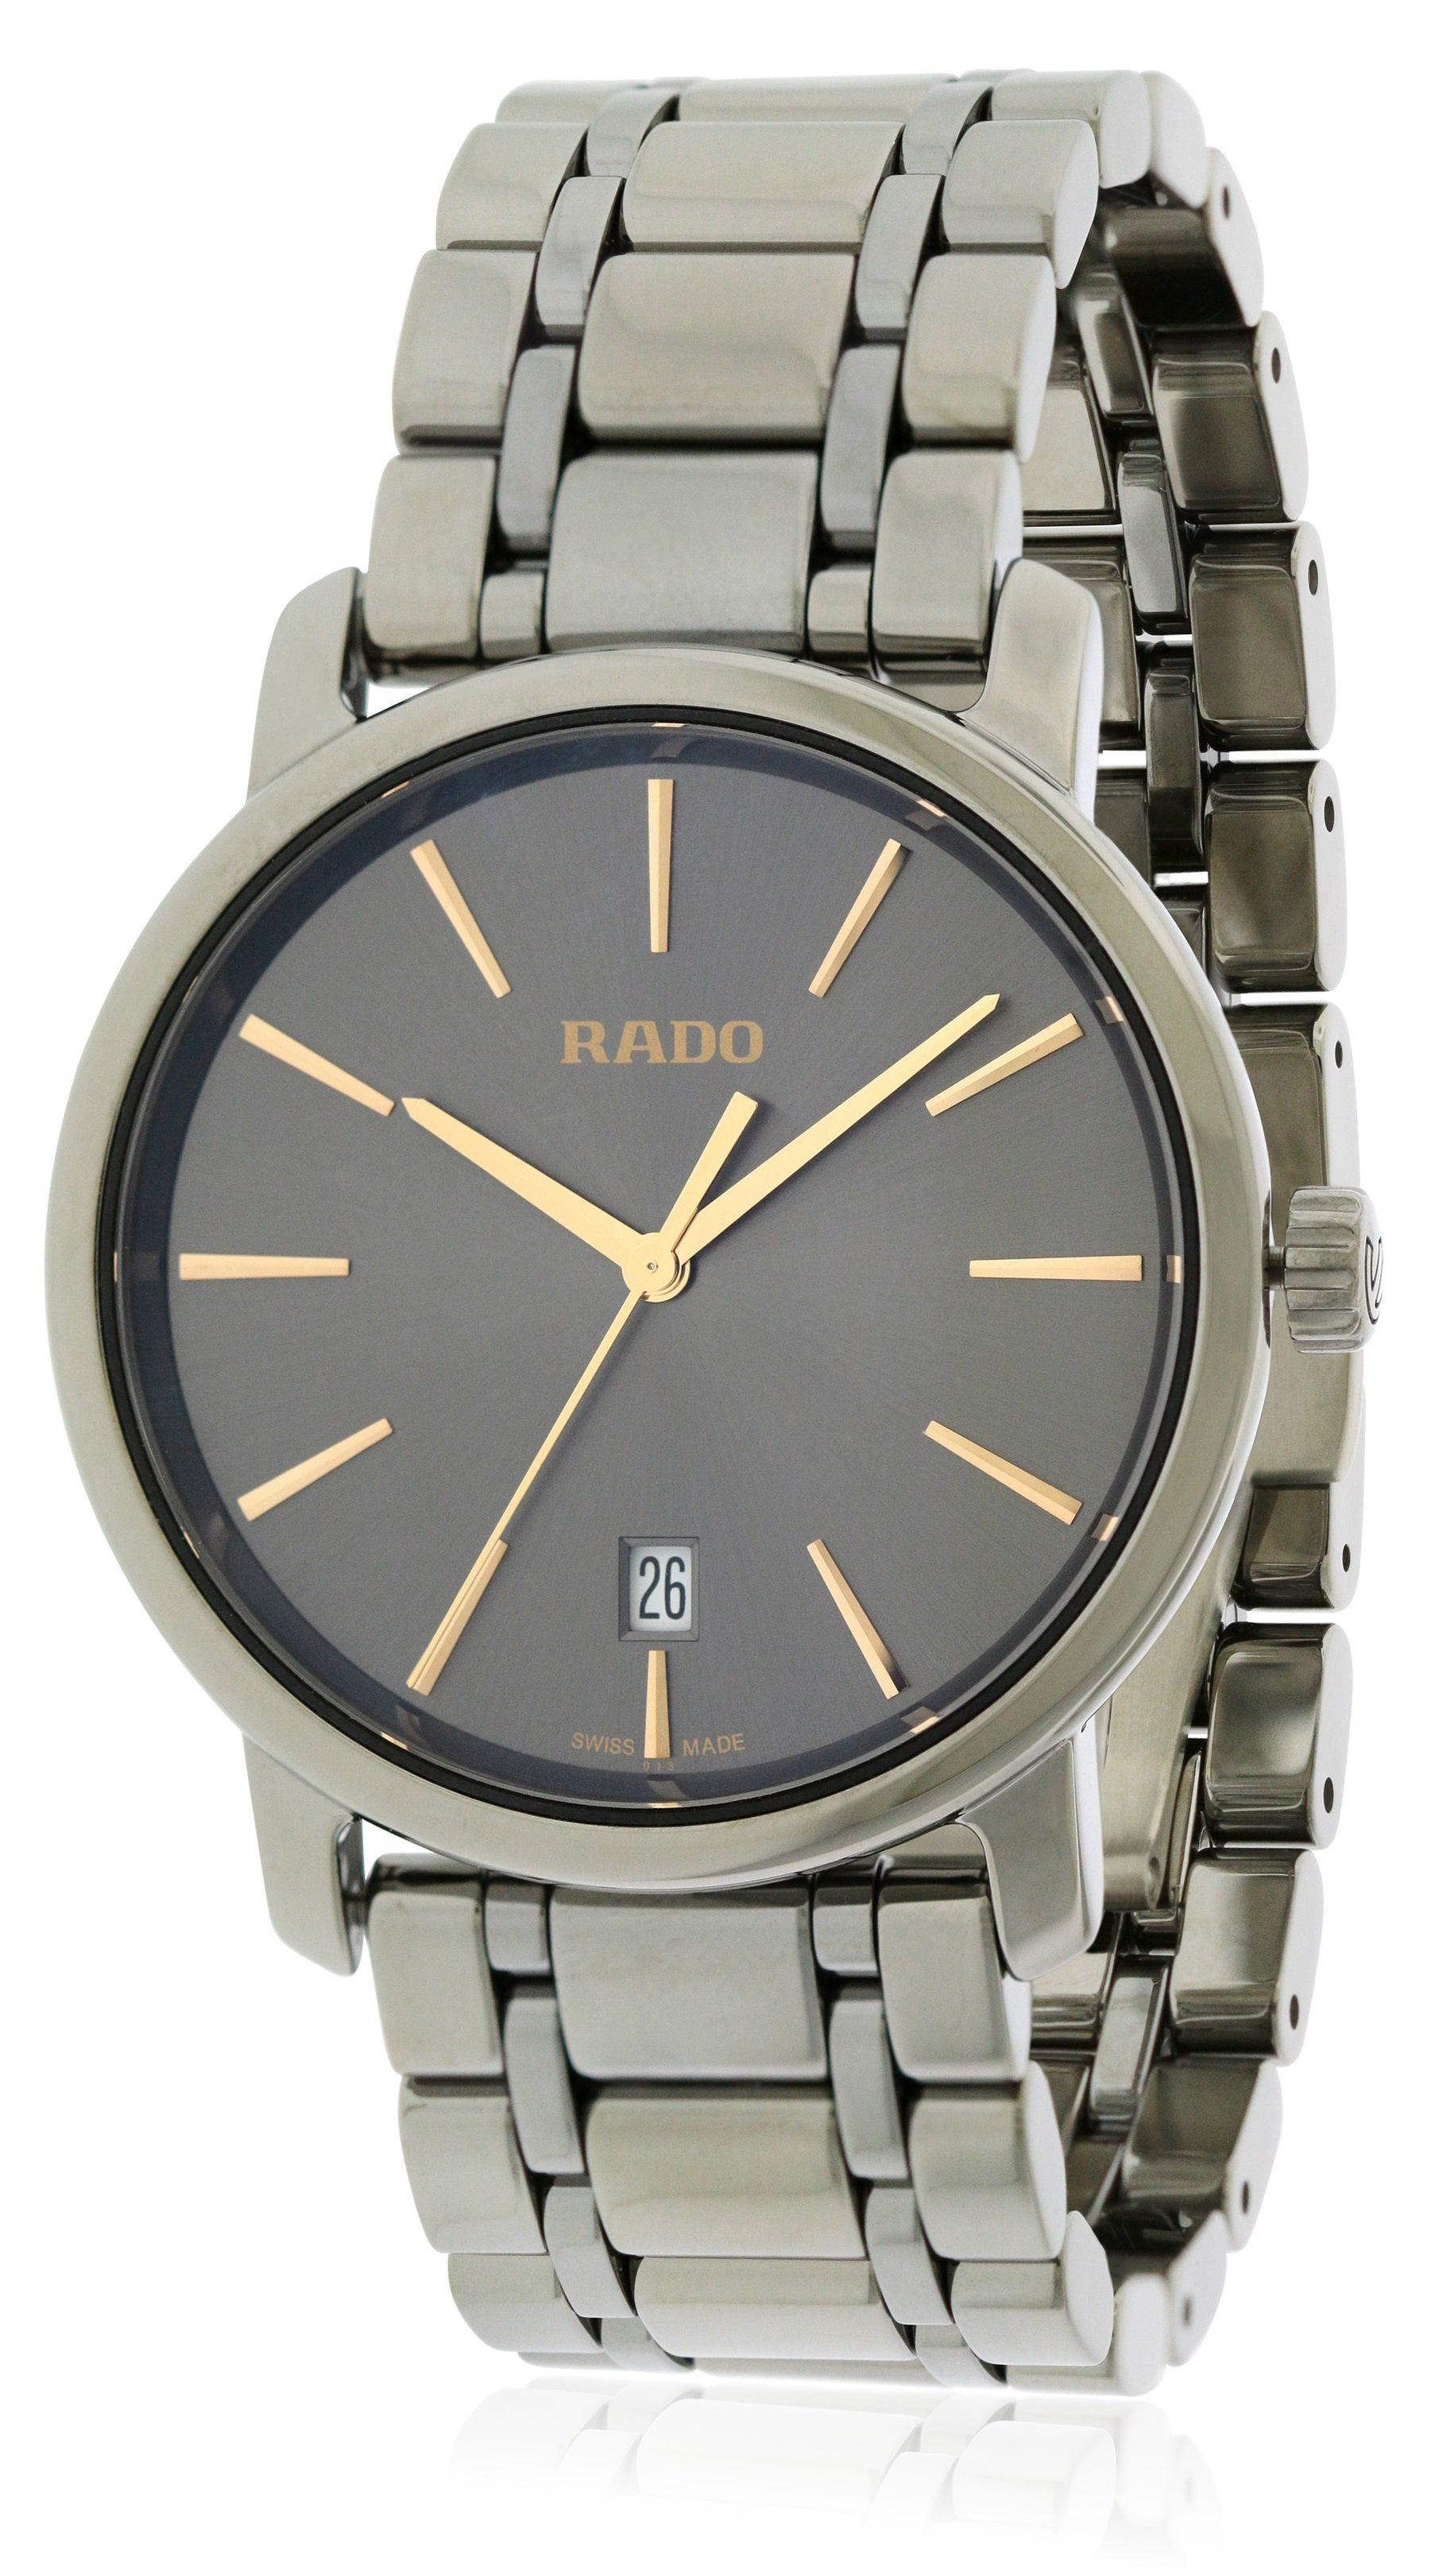 5d8d5235f Rado Diamaster XL Plasma High-tech Ceramic Mens Watch. Rado Diamaster XL  Plasma High-tech Ceramic Mens Watch